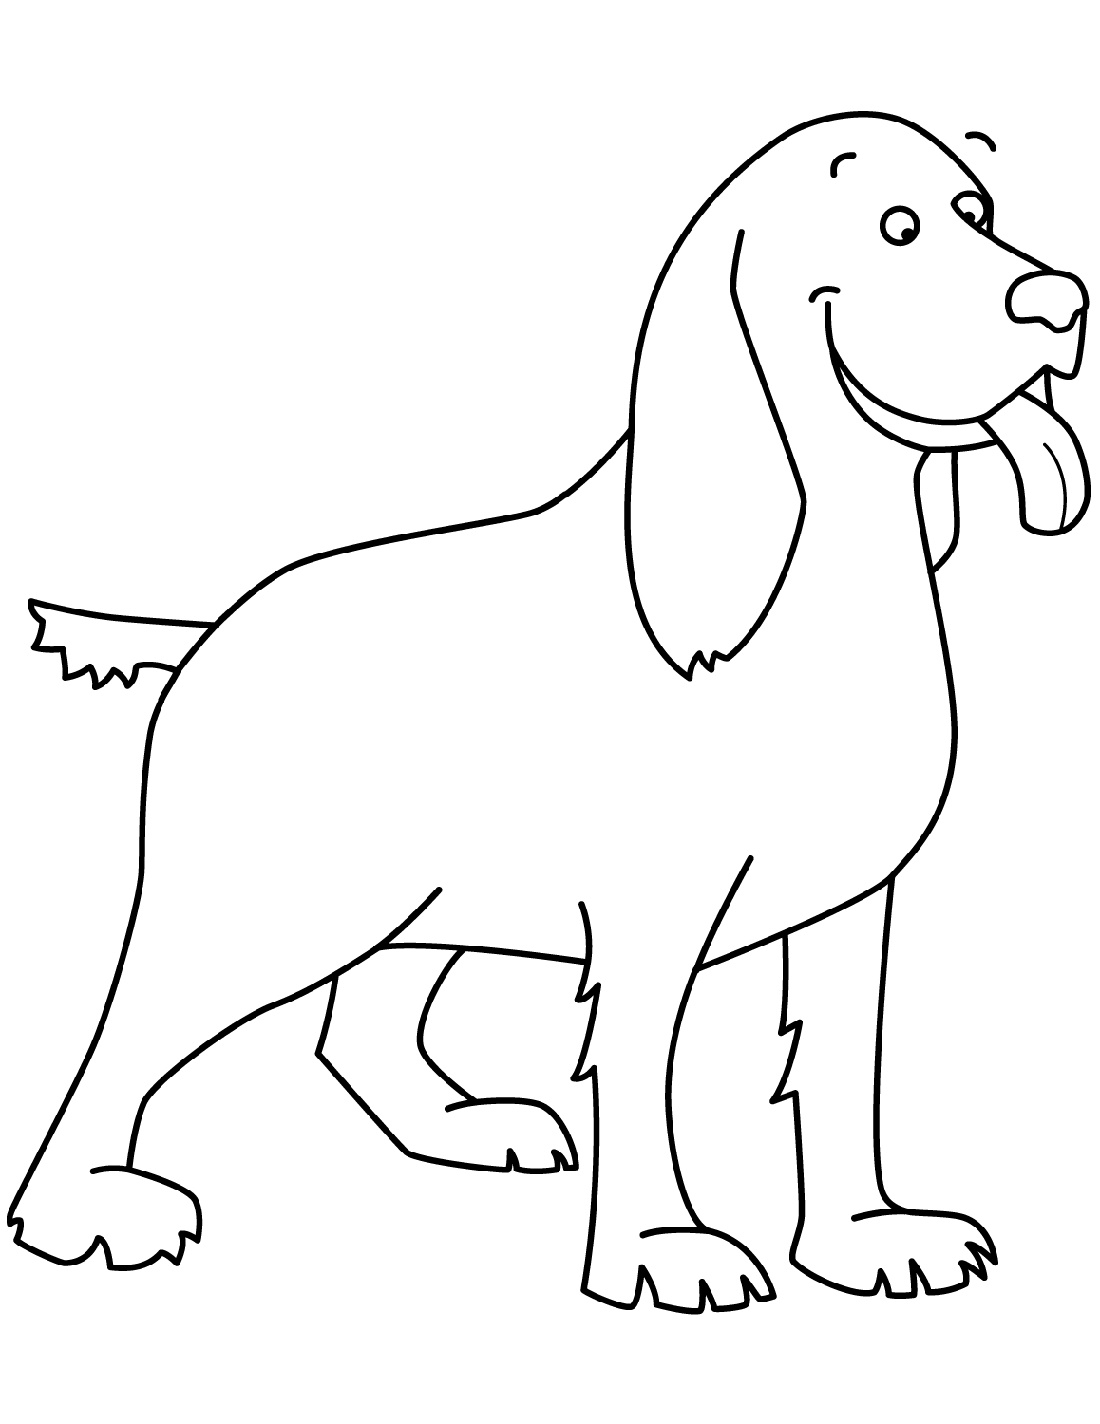 Beagle Coloring Pages Free Full Documents